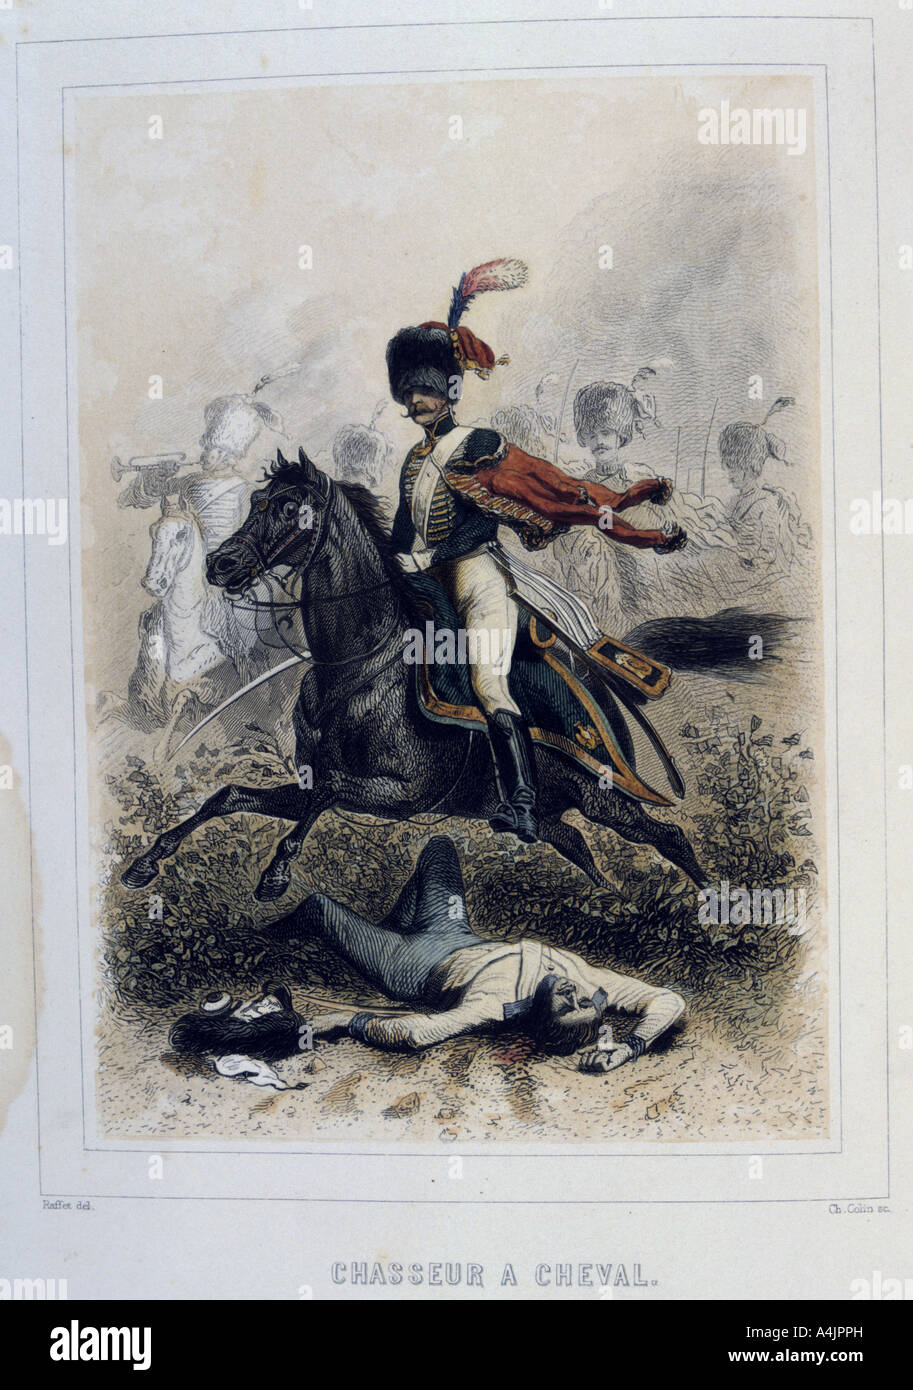 Chasseurs à Cheval light cavalry 1859  - Stock Image